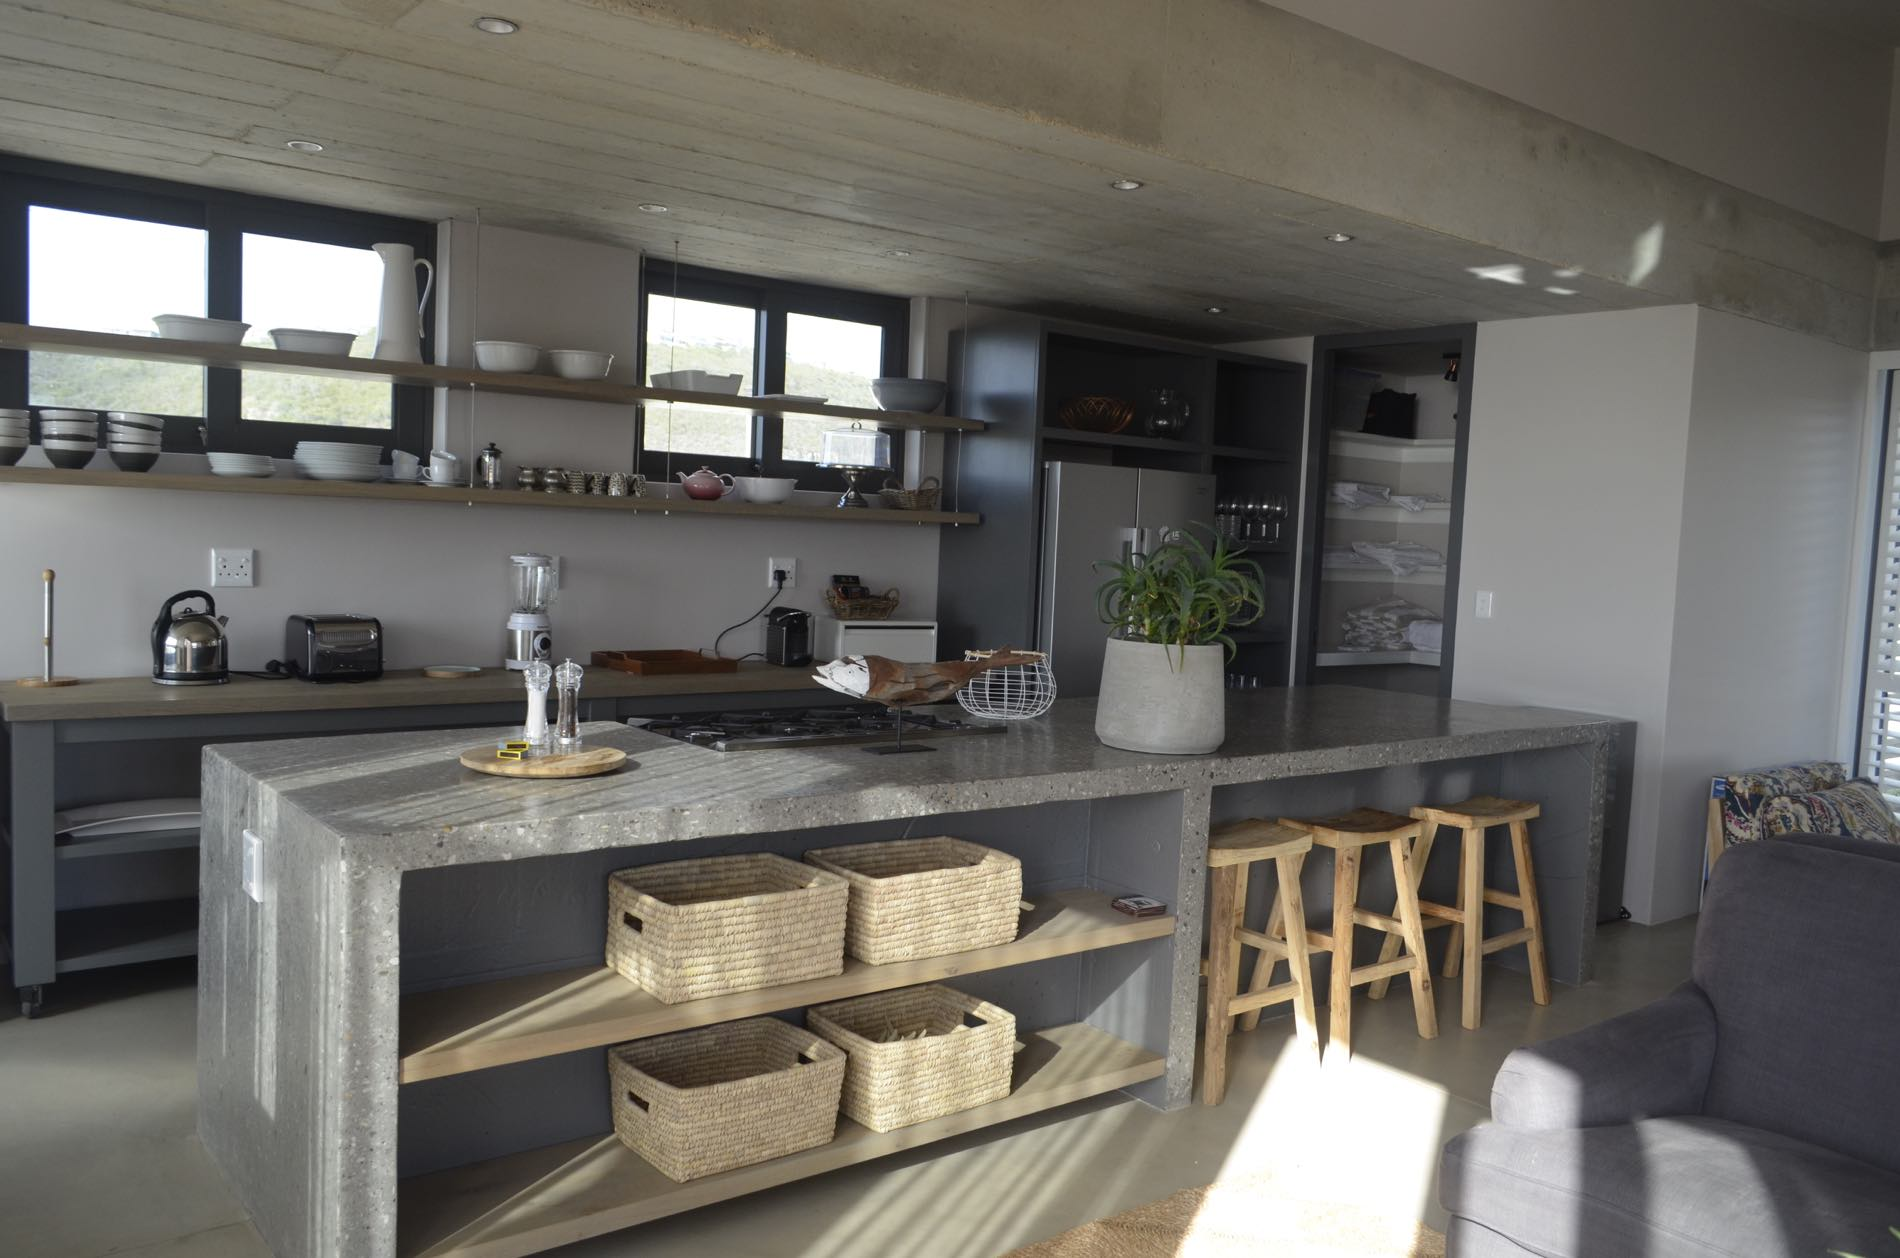 Illanga beach house Self Catering Accommodation Self at Plett6